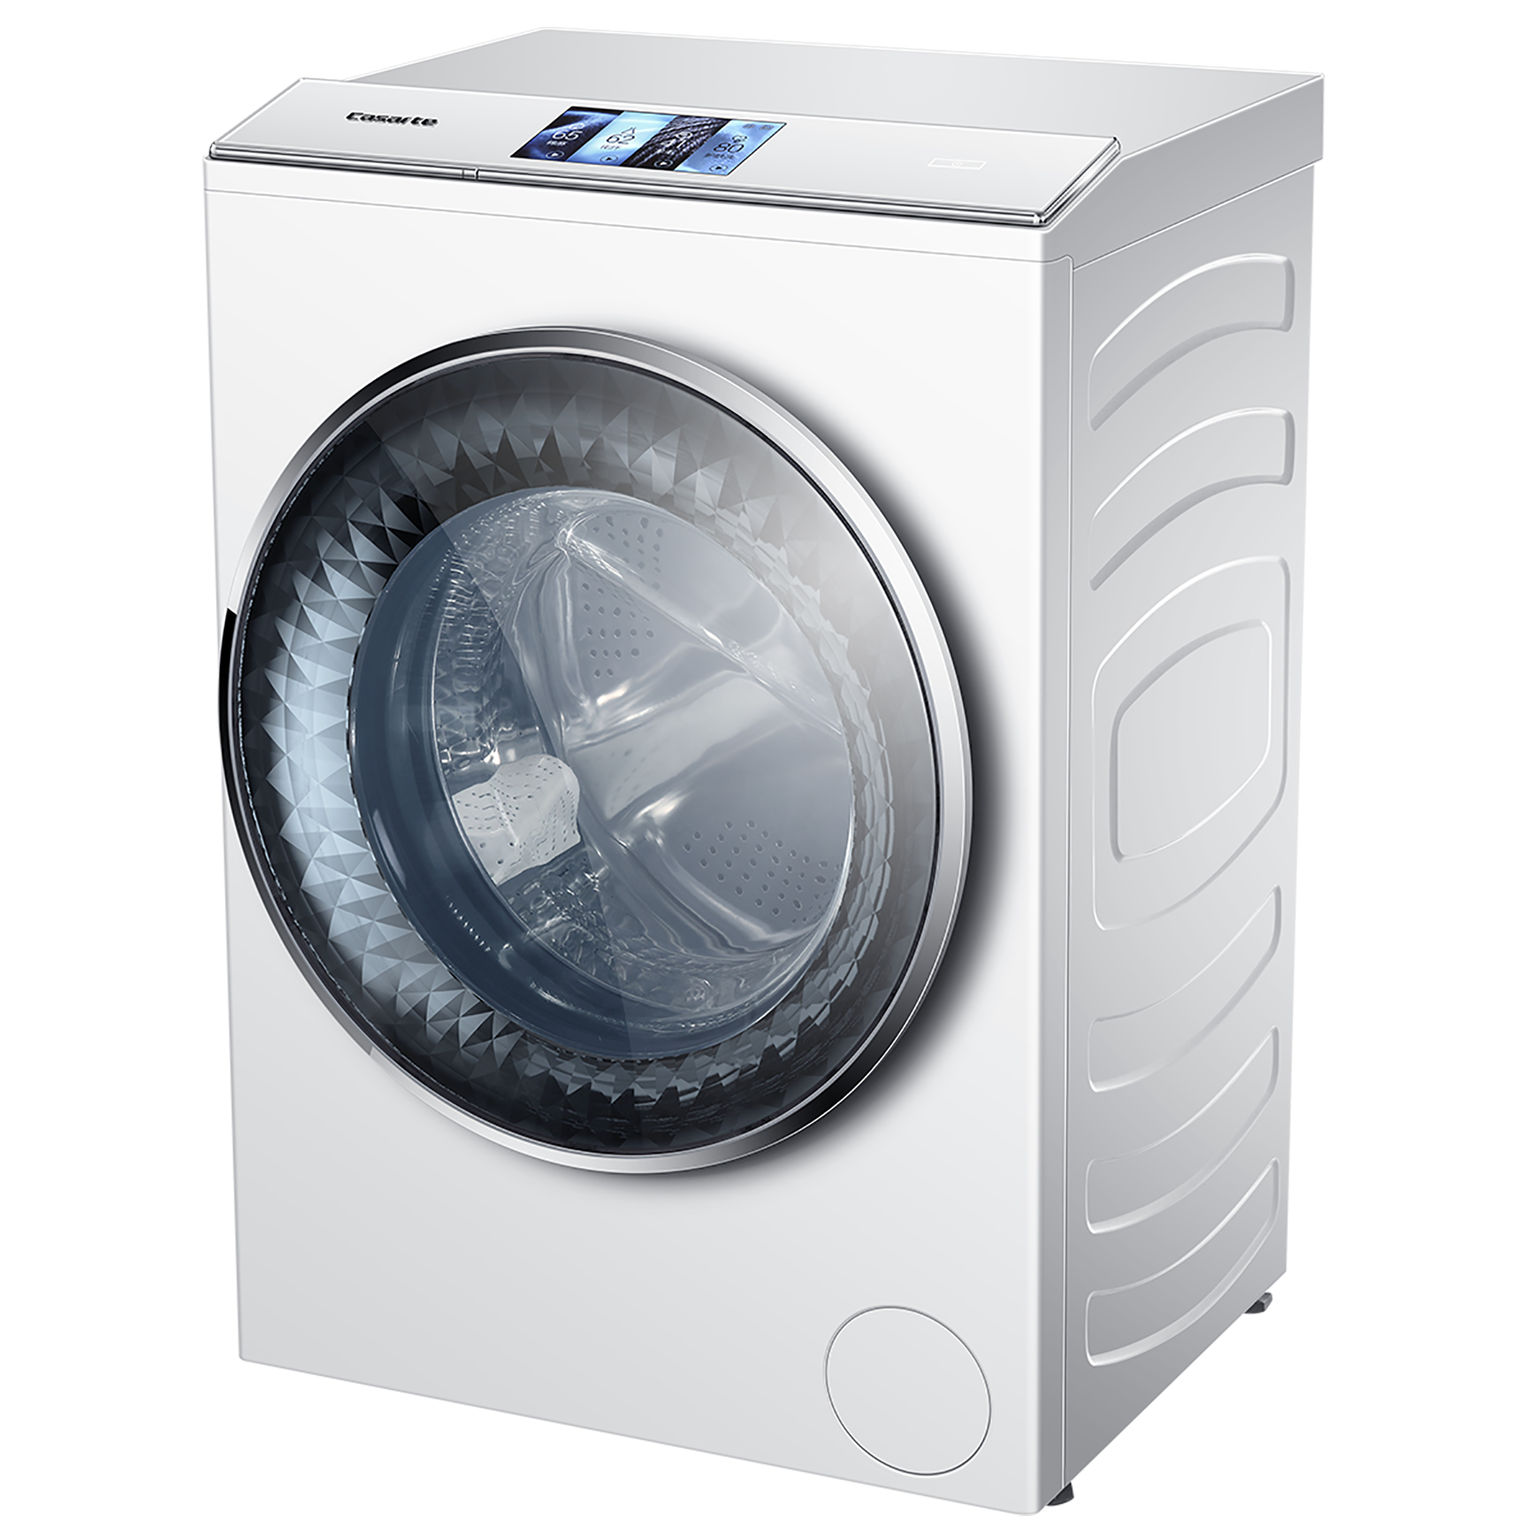 Best Top Loading Clothes Washer >> Casarte C5 Washer - Entry - iF WORLD DESIGN GUIDE